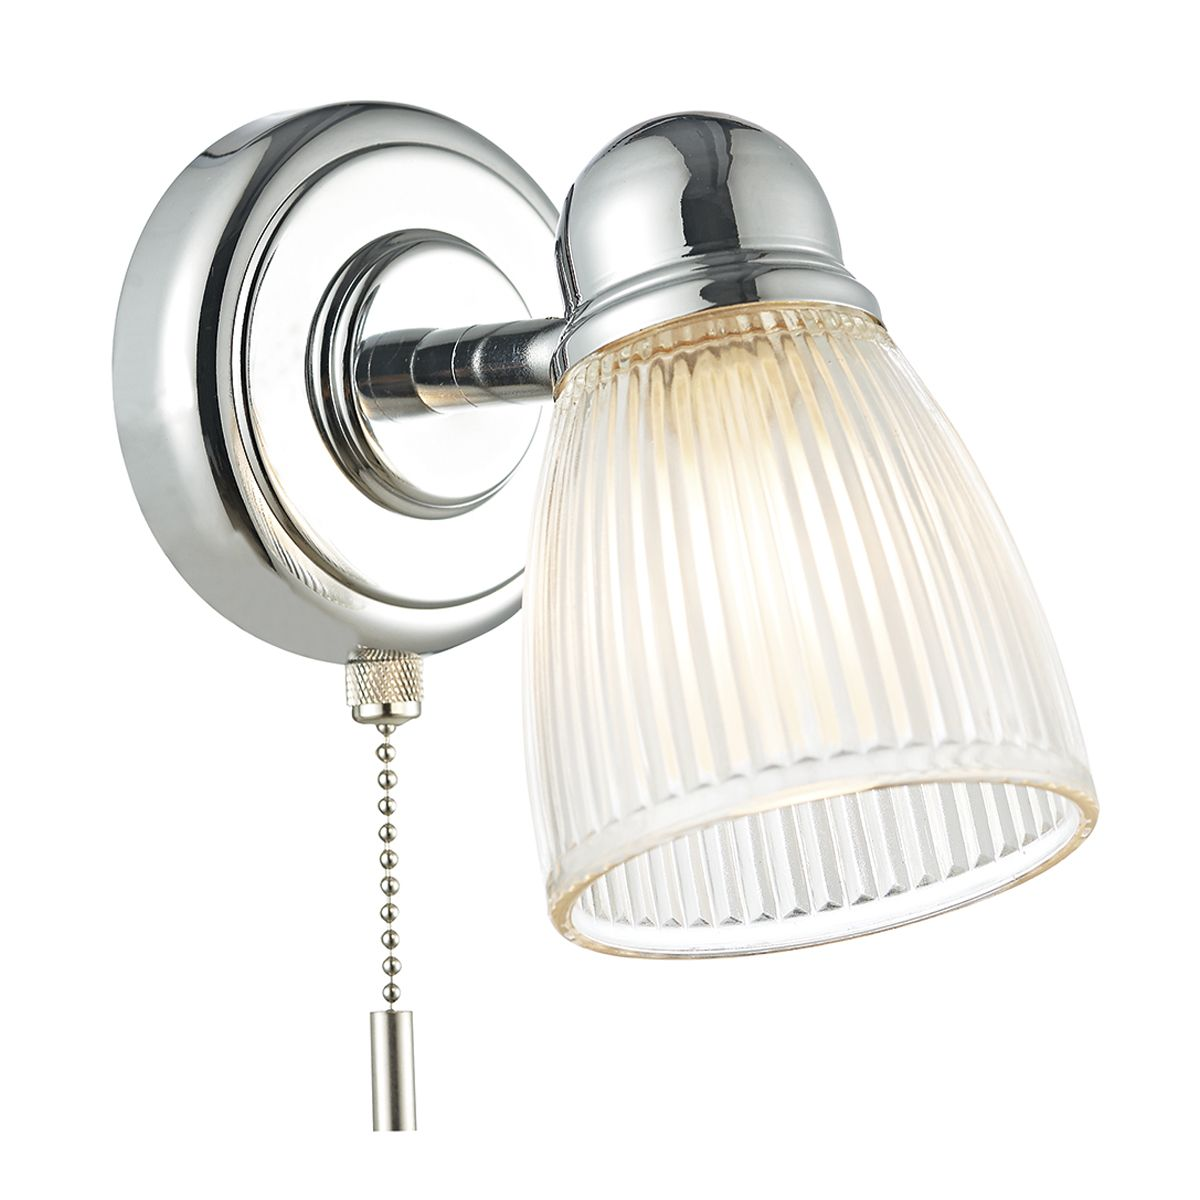 Ced0738 Cedric Bathroom Single Wall Light Polished Nickel Bathroom Rated Ip44 Ribbed Outer Glass Shades Switched